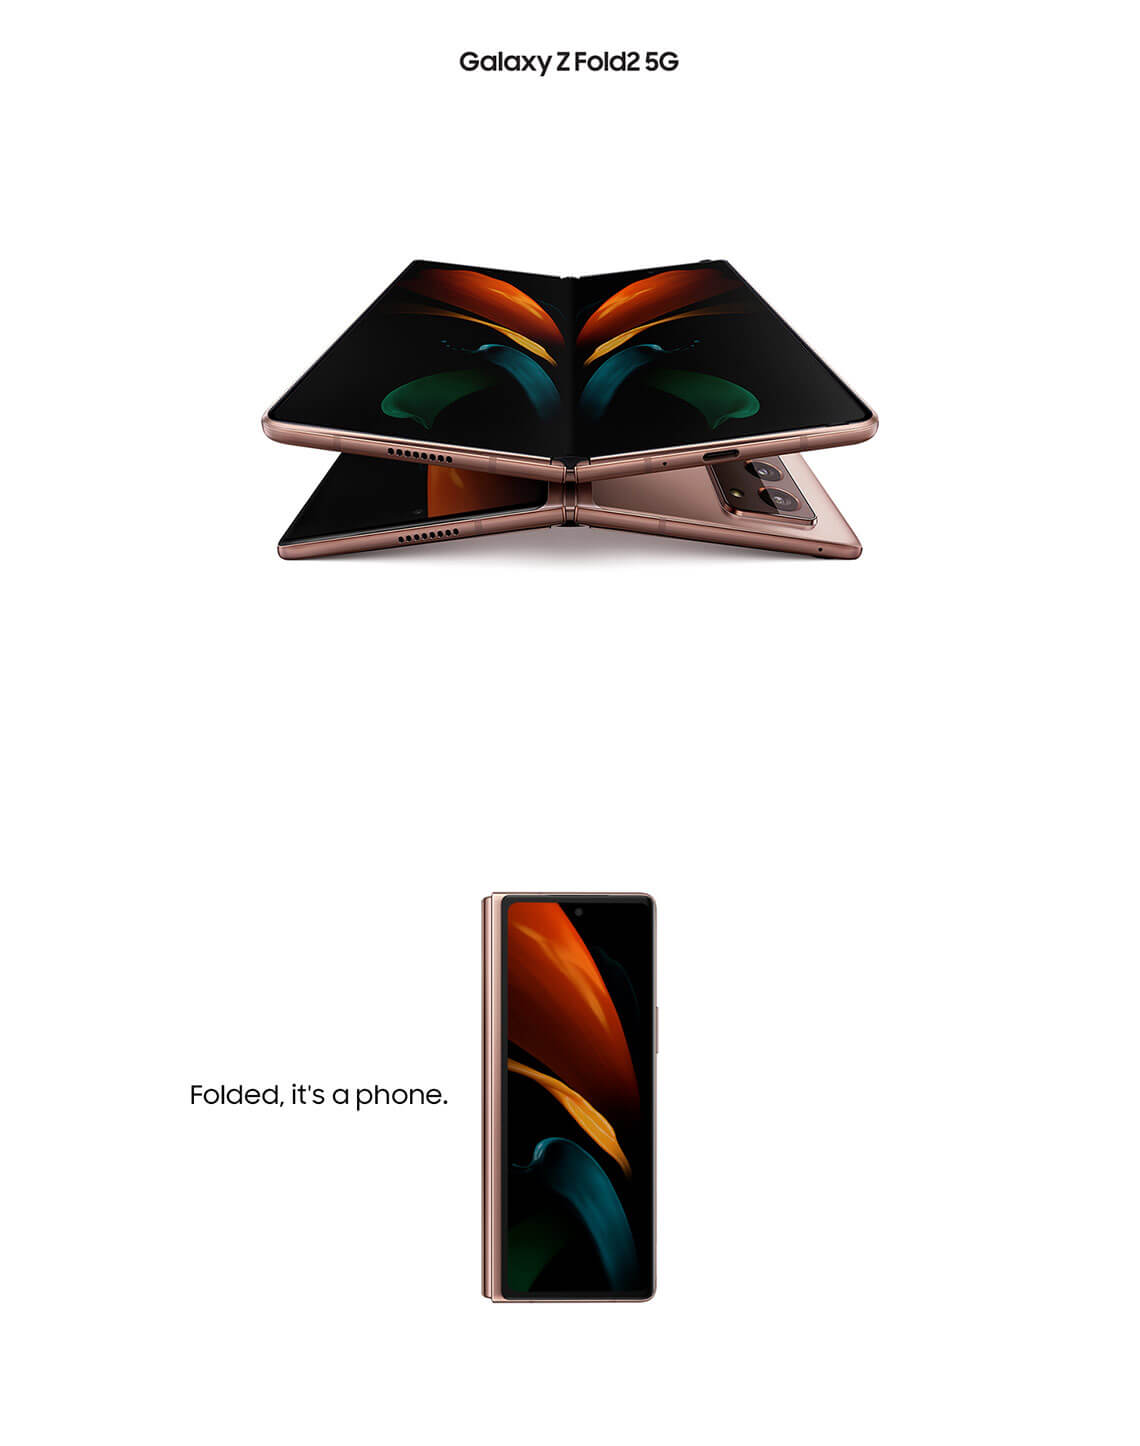 samsung galaxy z fold2 5g specifications